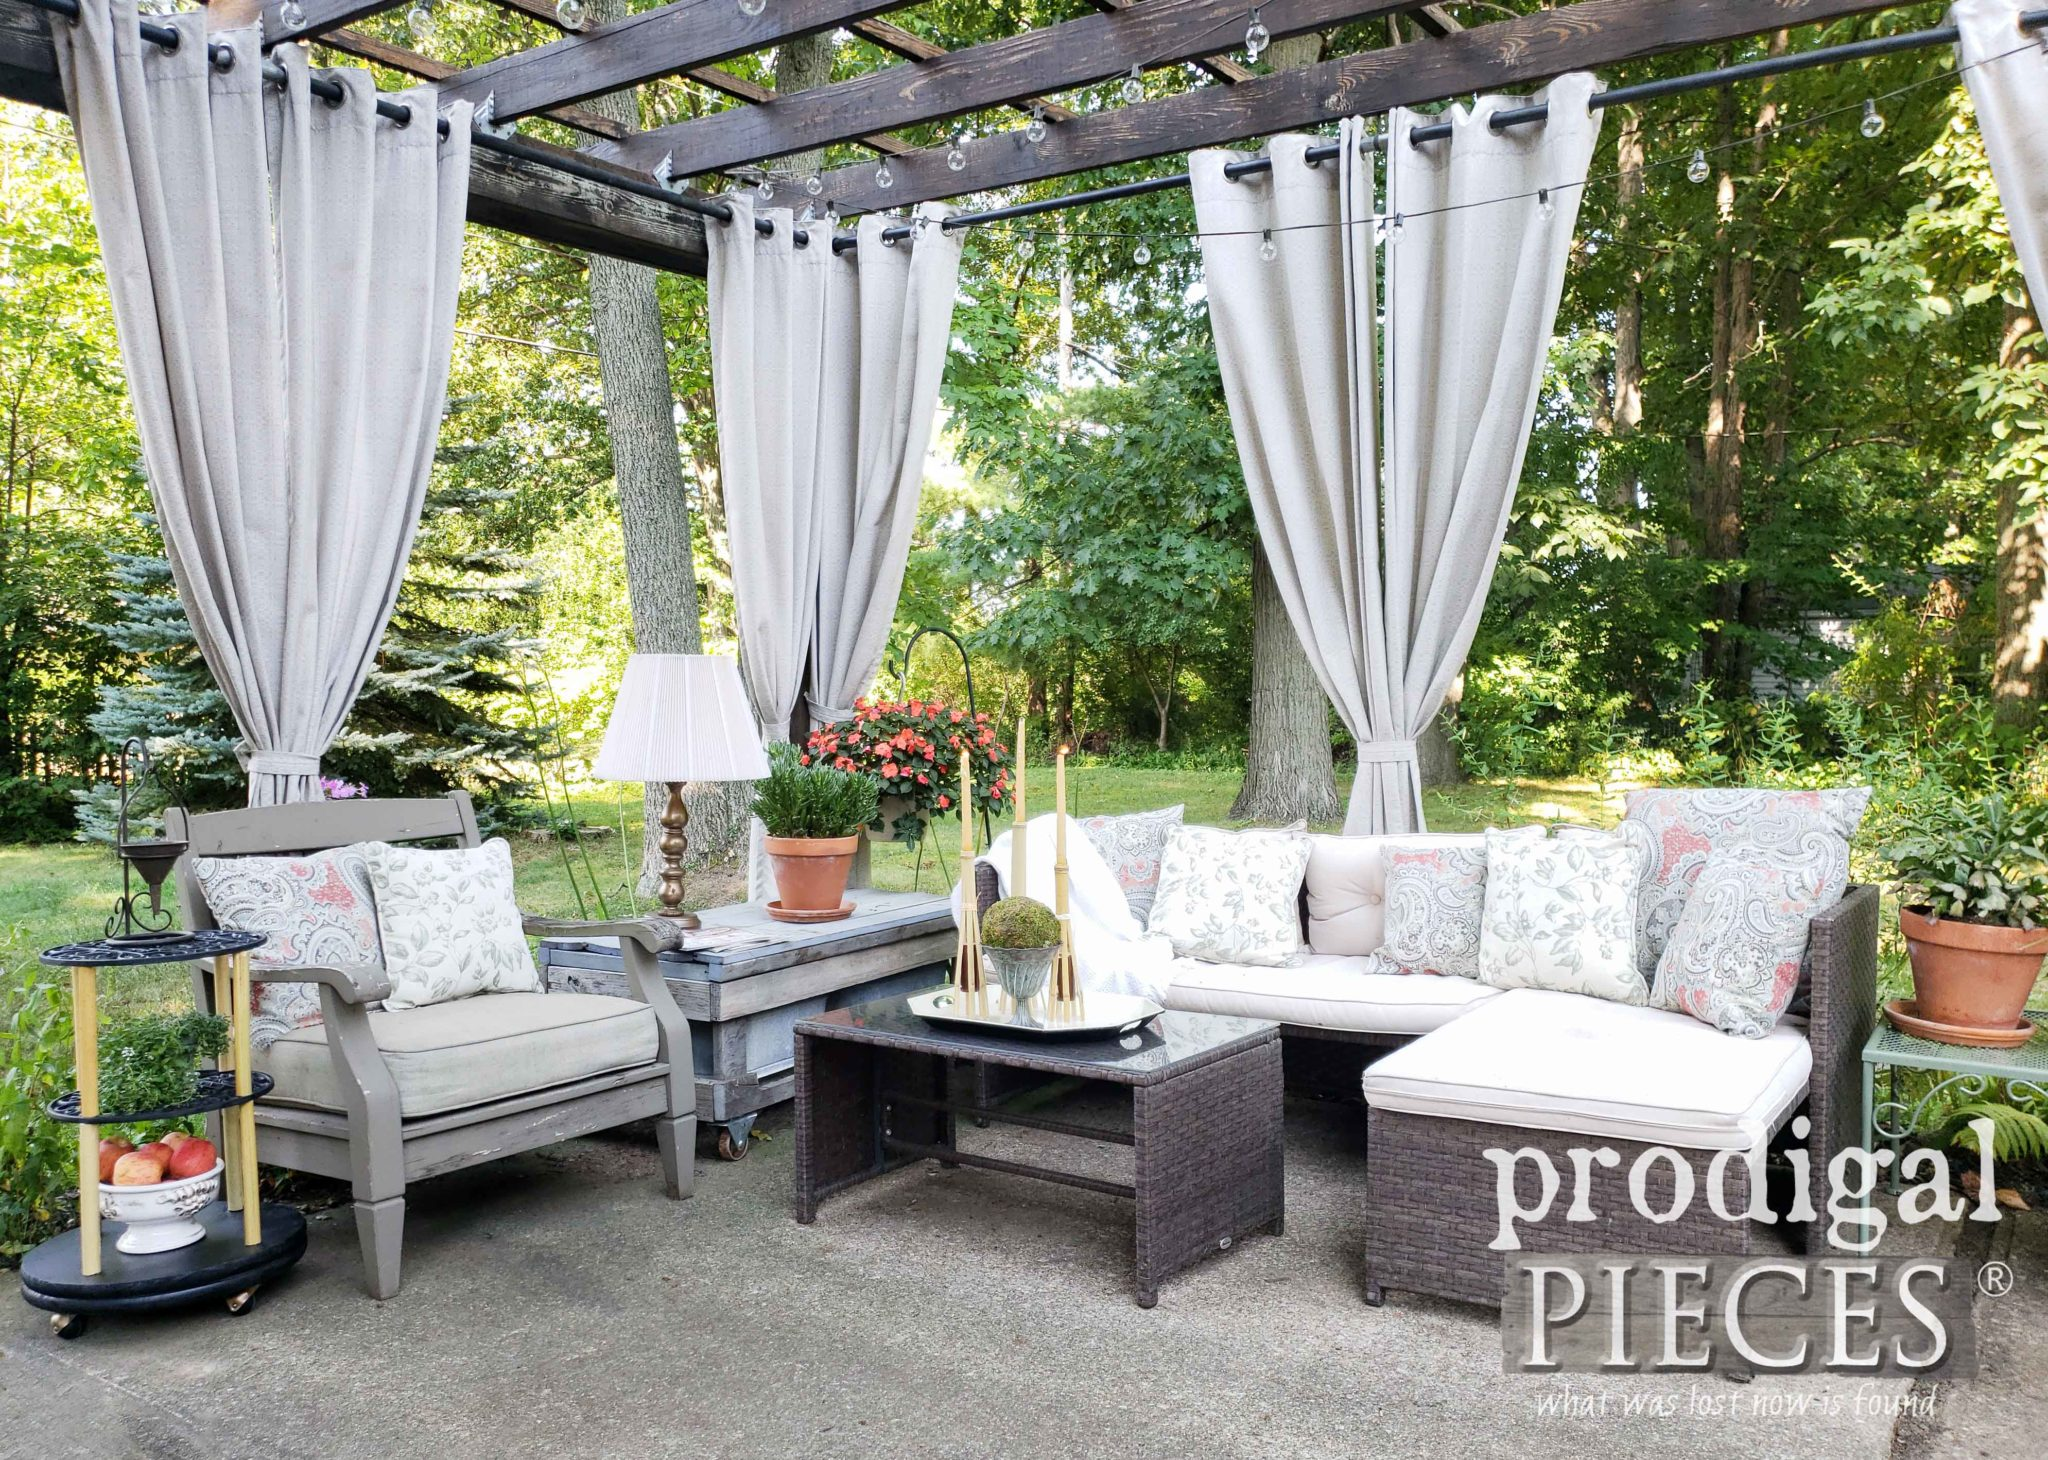 Outdoor Patio Area with Pergola and DIY decor ideas by Larissa of Prodigal Pieces | prodigalpieces.com